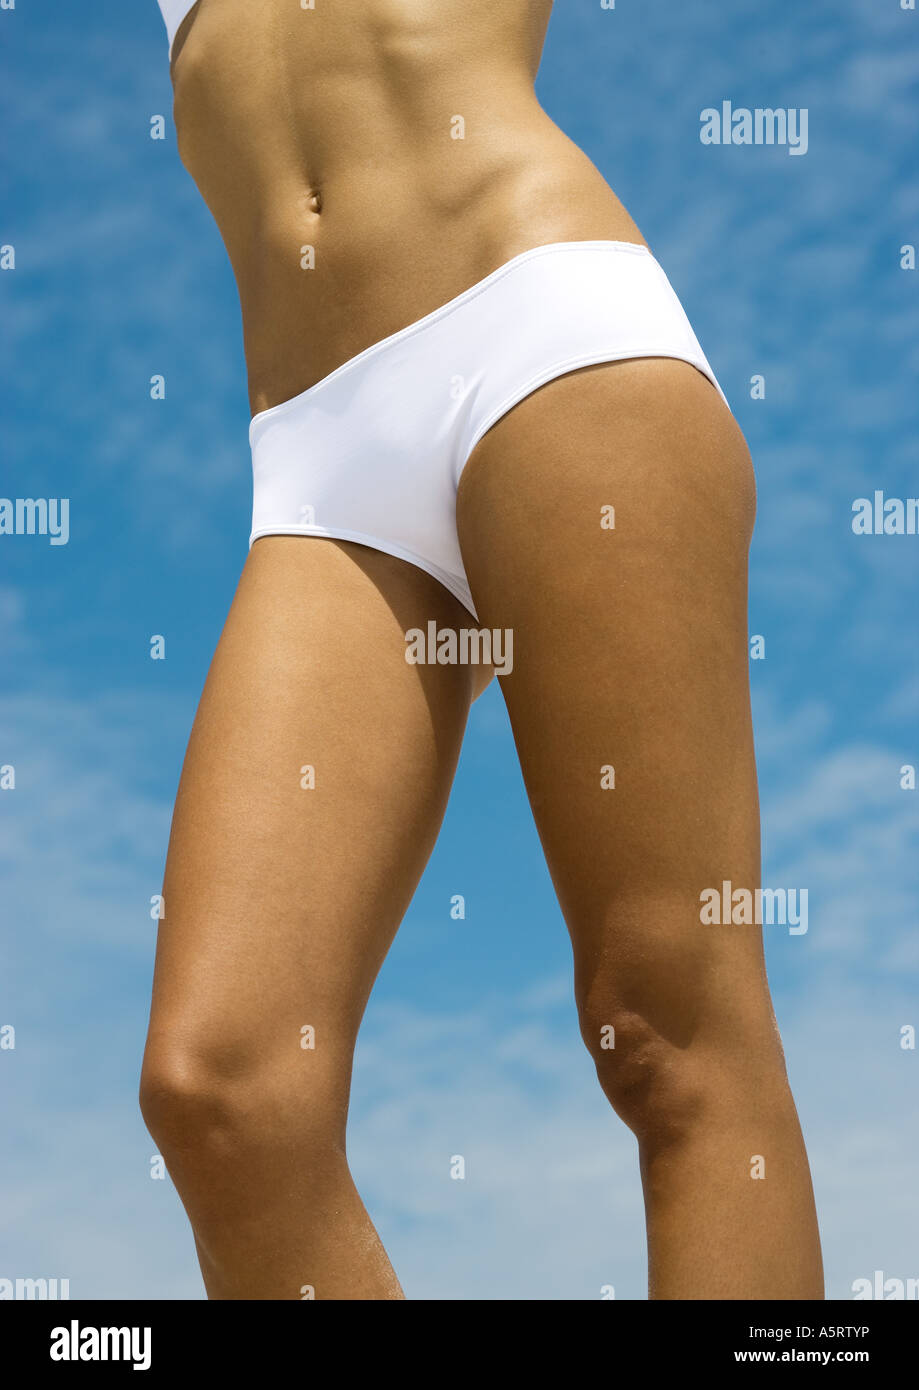 Woman in bikini, mid section, sky in background - Stock Image